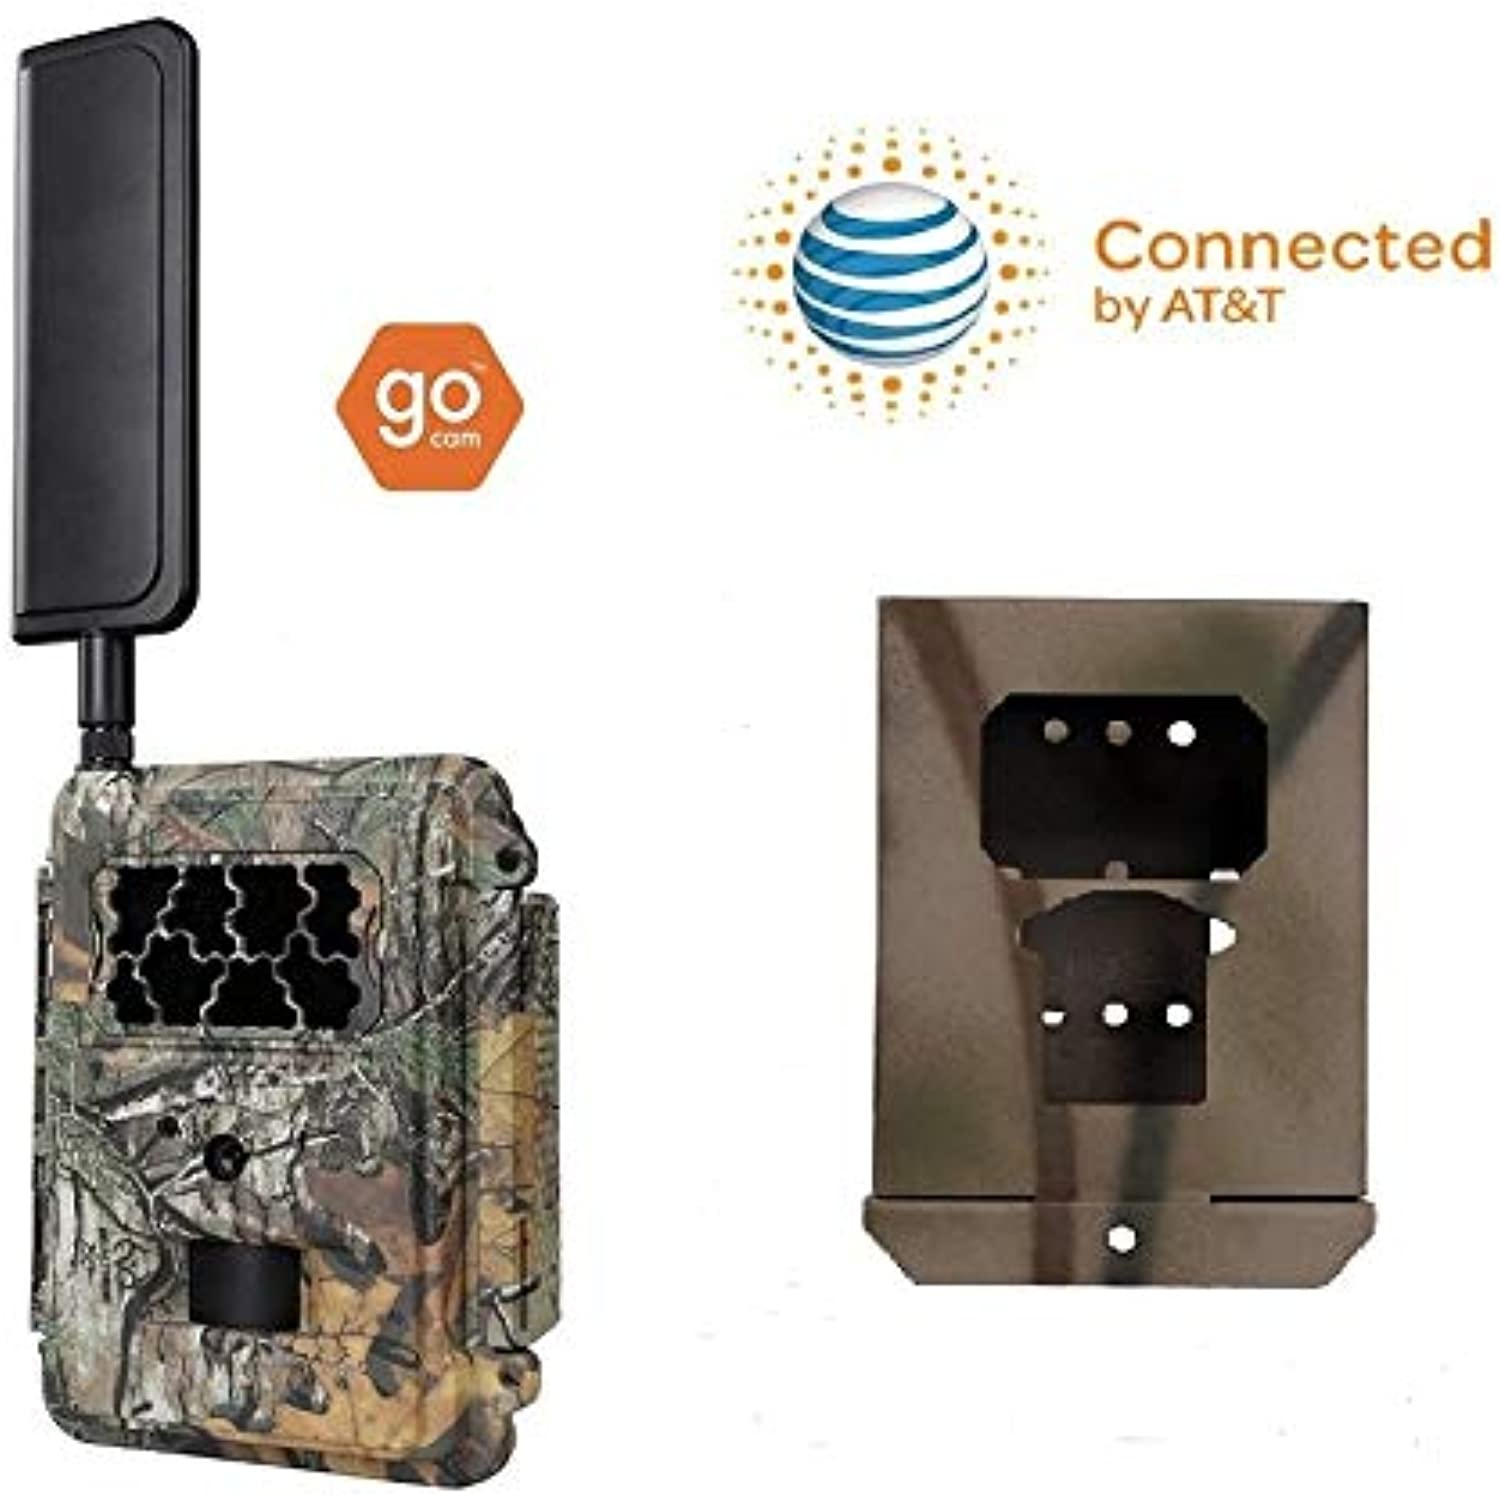 Spartan at&T 4G LTE GoCam Deluxe Package 720P Wireless Trail Camera Blackout IR (Camera and Lock Box)